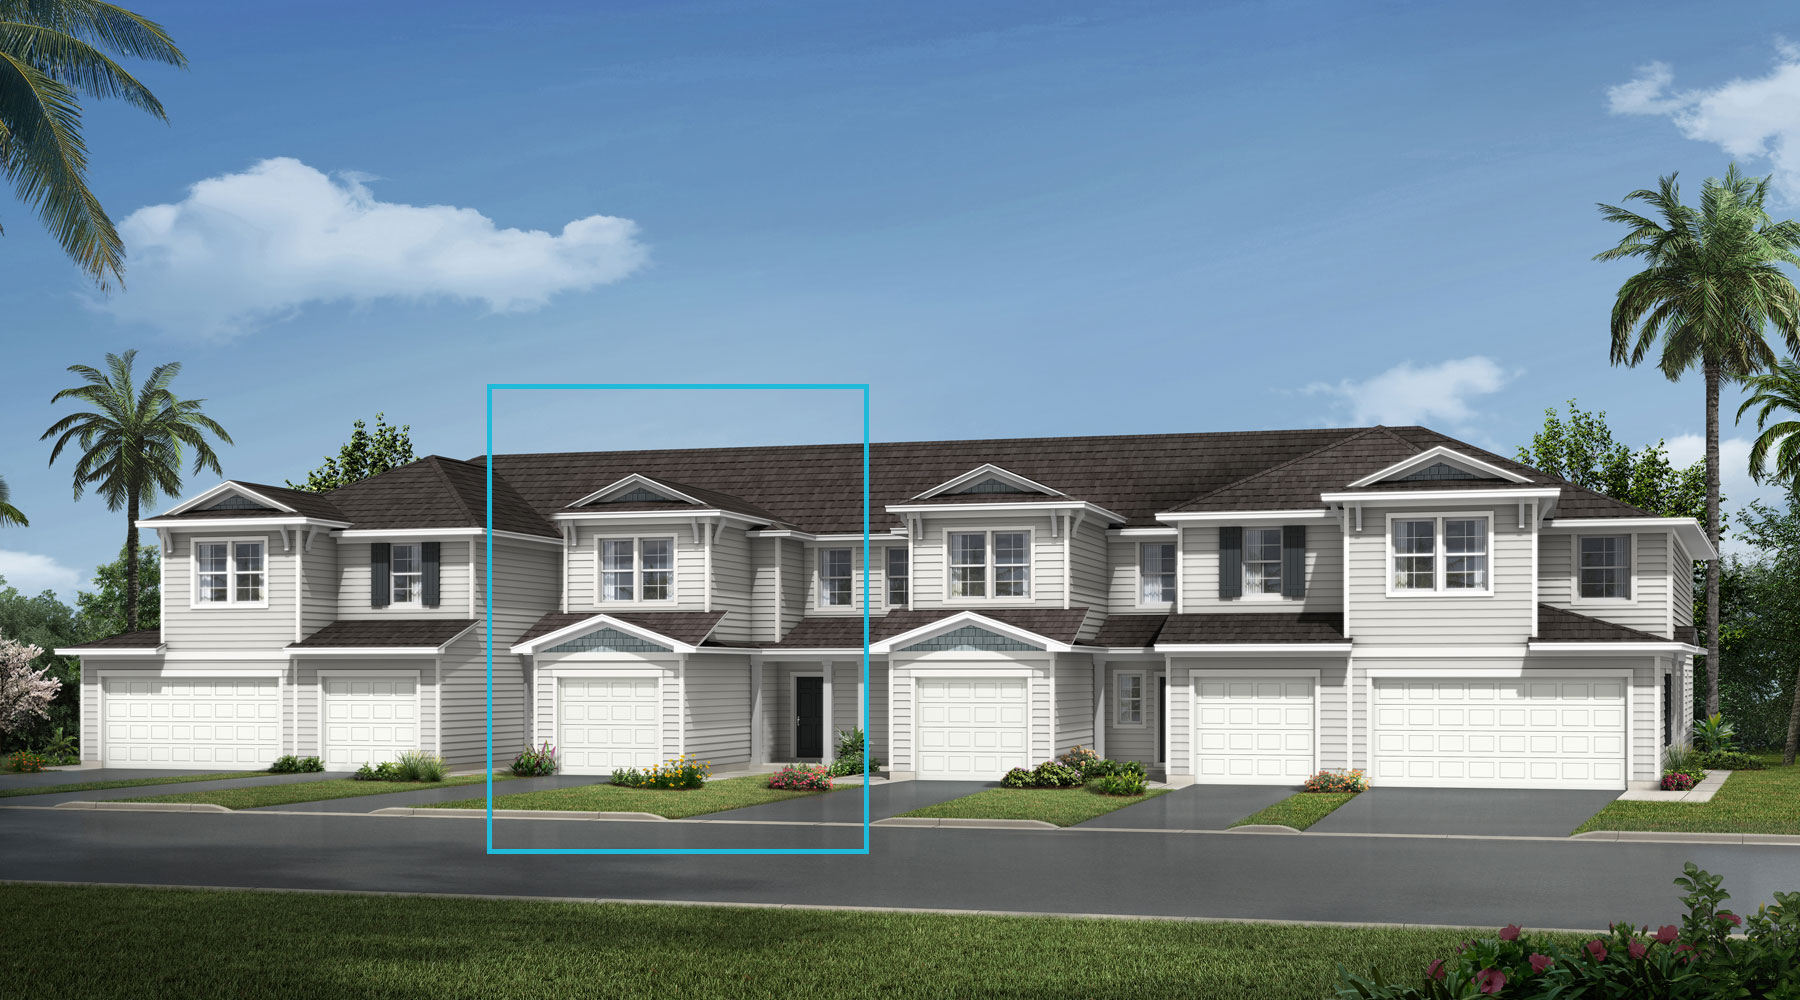 Oasis Plan TownHomes at Wells Creek in Jacksonville Florida by Mattamy Homes